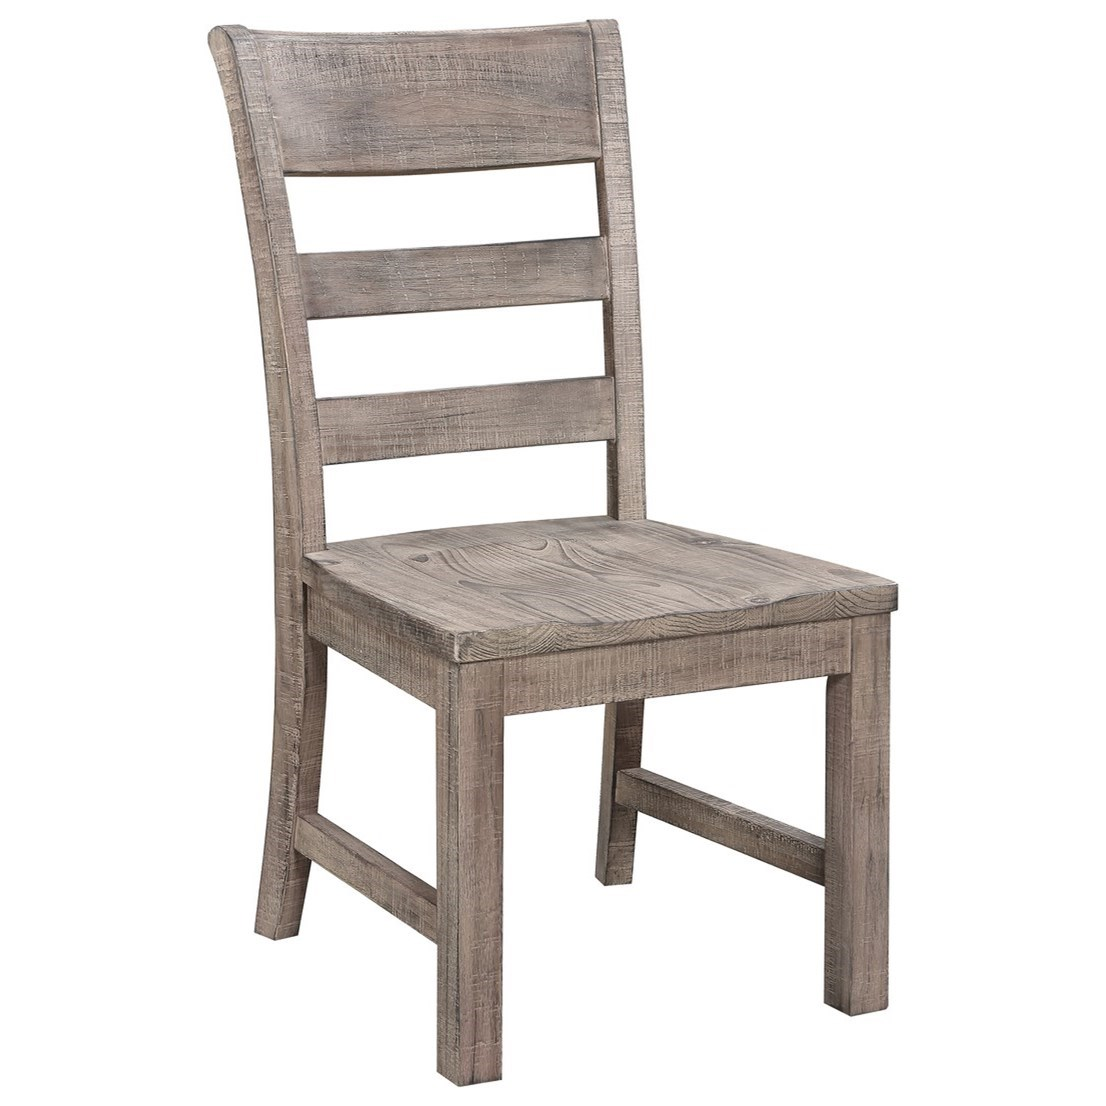 Slat Back Side Chair with Wood Seat